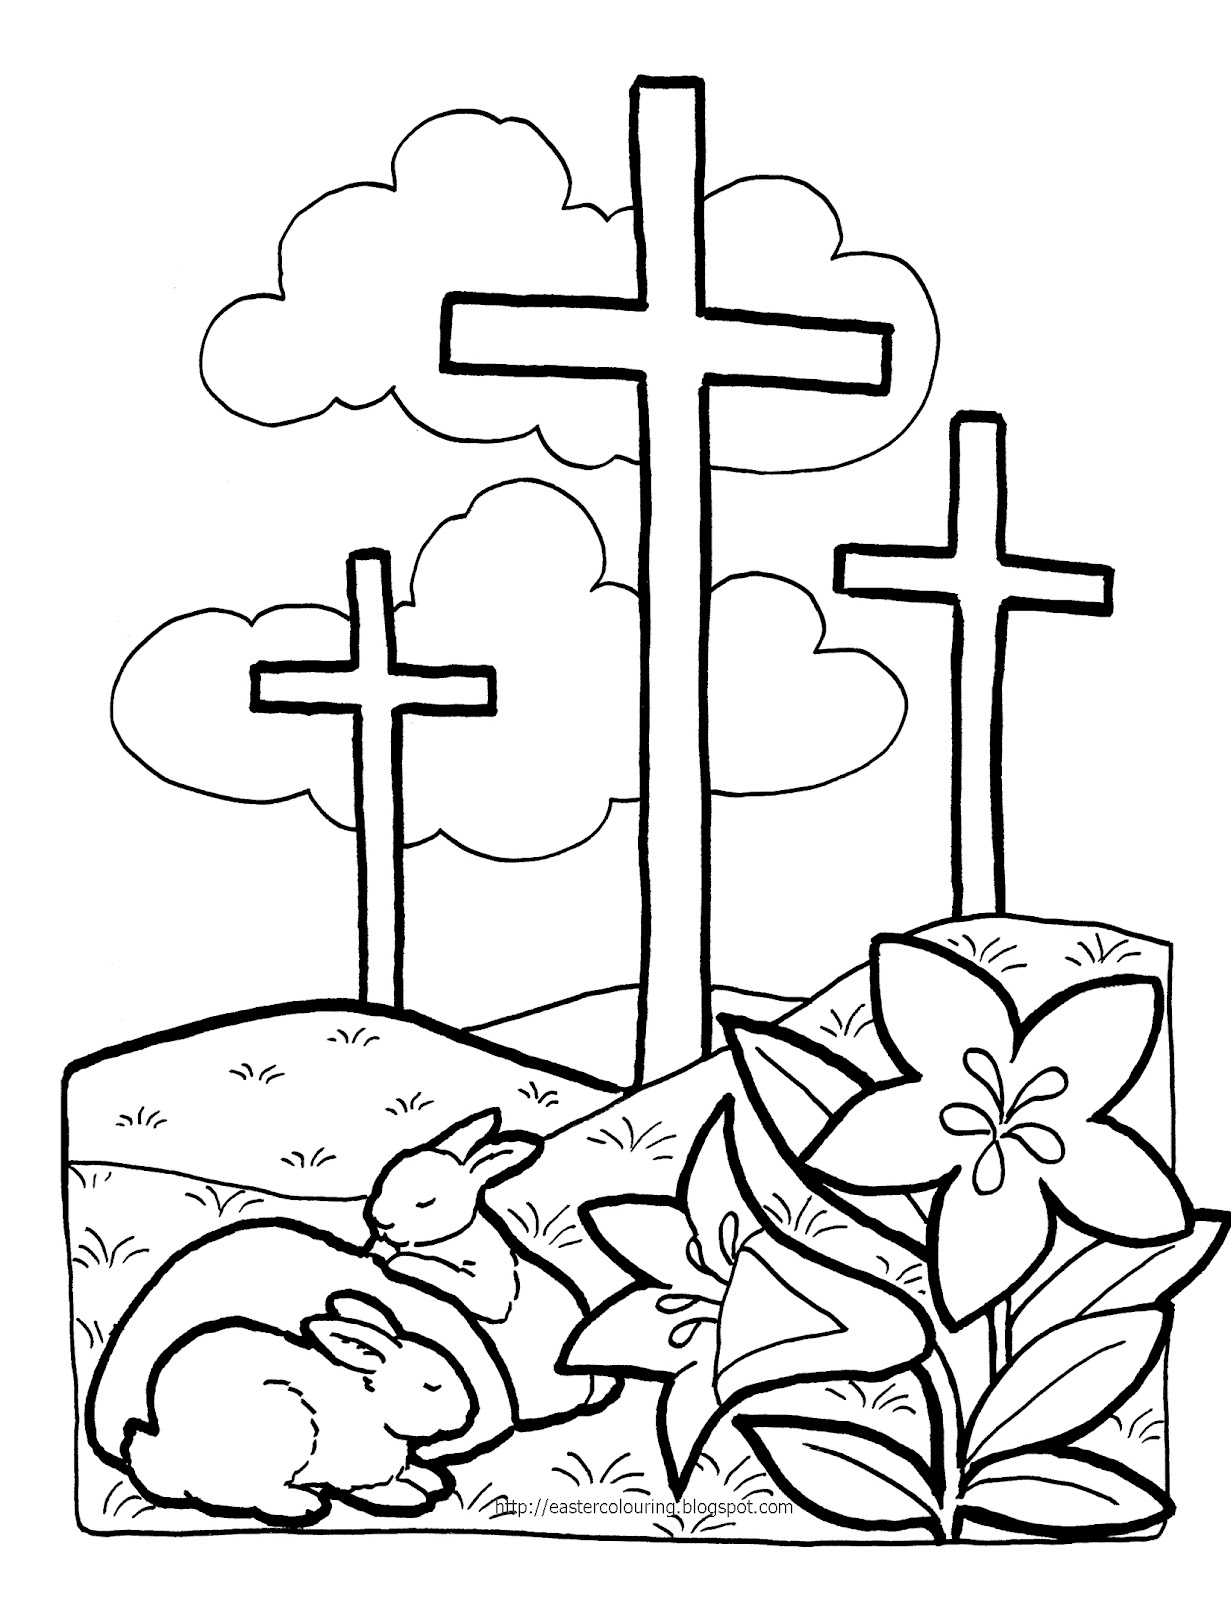 EASTER COLOURING RELIGIOUS EASTER